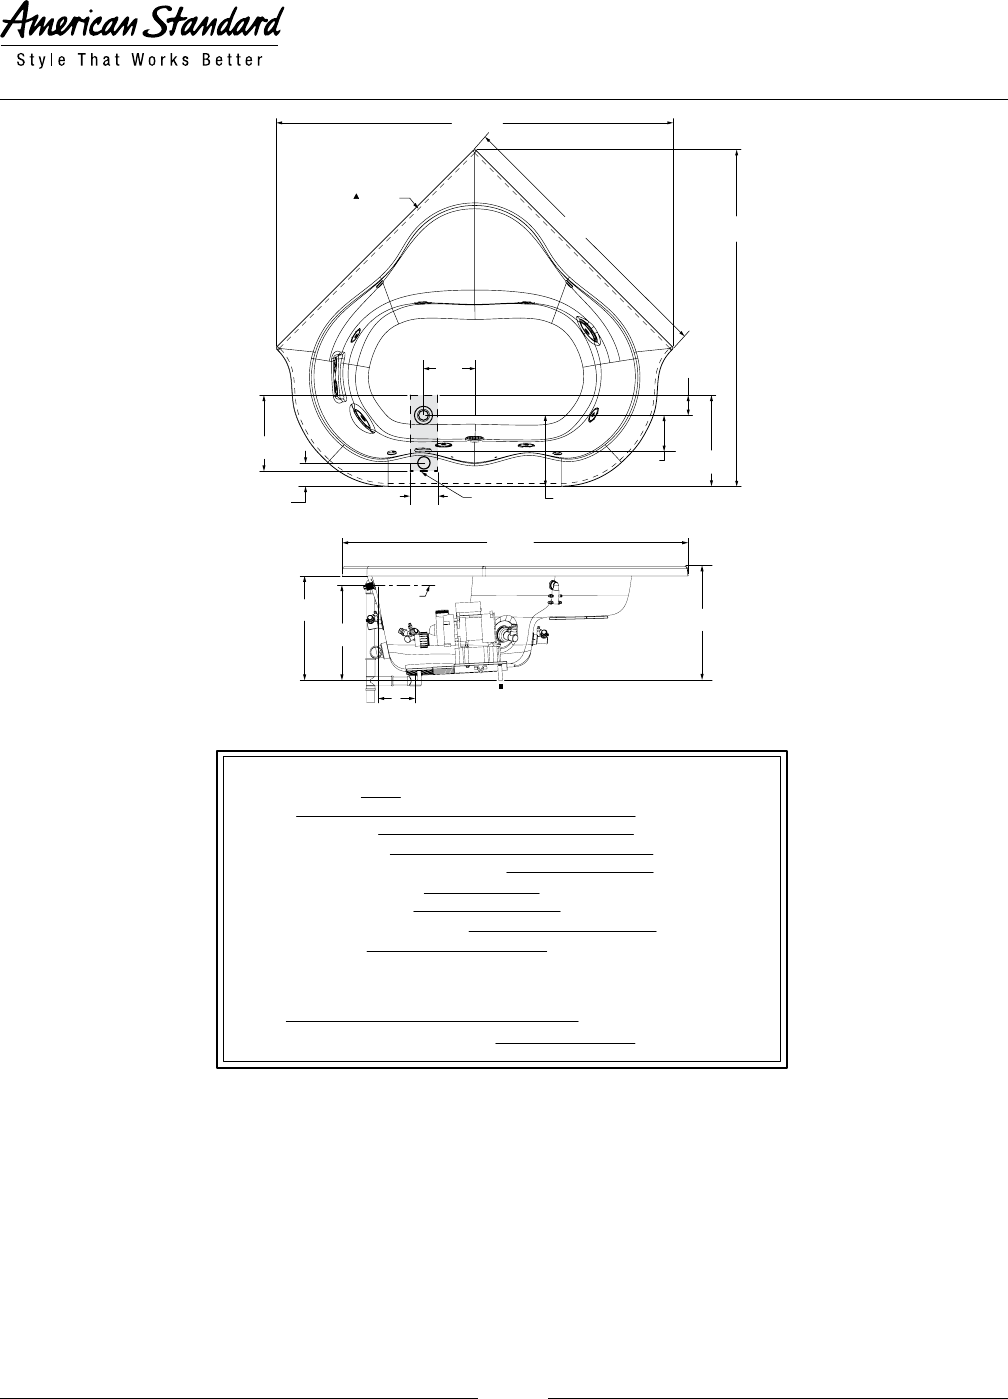 Page 2 of American Standard Hot Tub ANSI Z124.1 User Guide